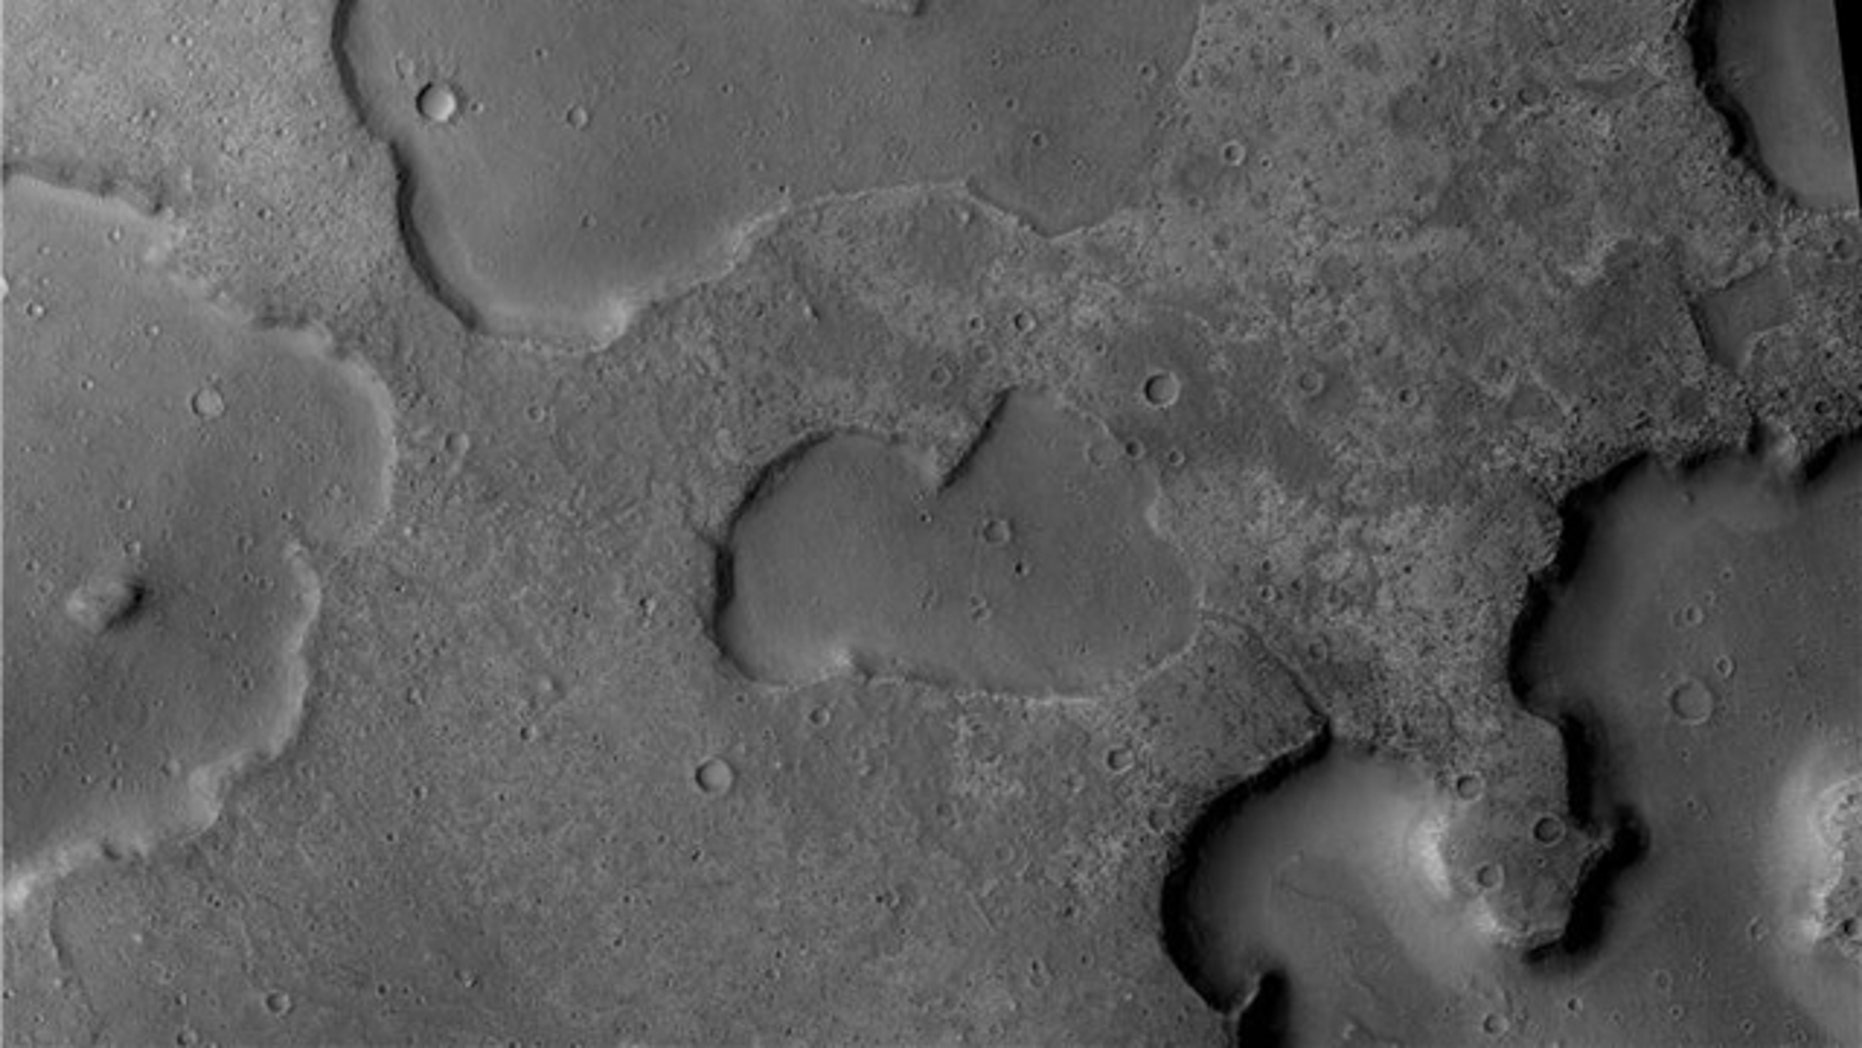 The Mars Reconnaisance Orbiter's Context Camera captured channels running between depressions, evidence of ancient drainage between lakes, researchers say. The central depression is 4 km wide.